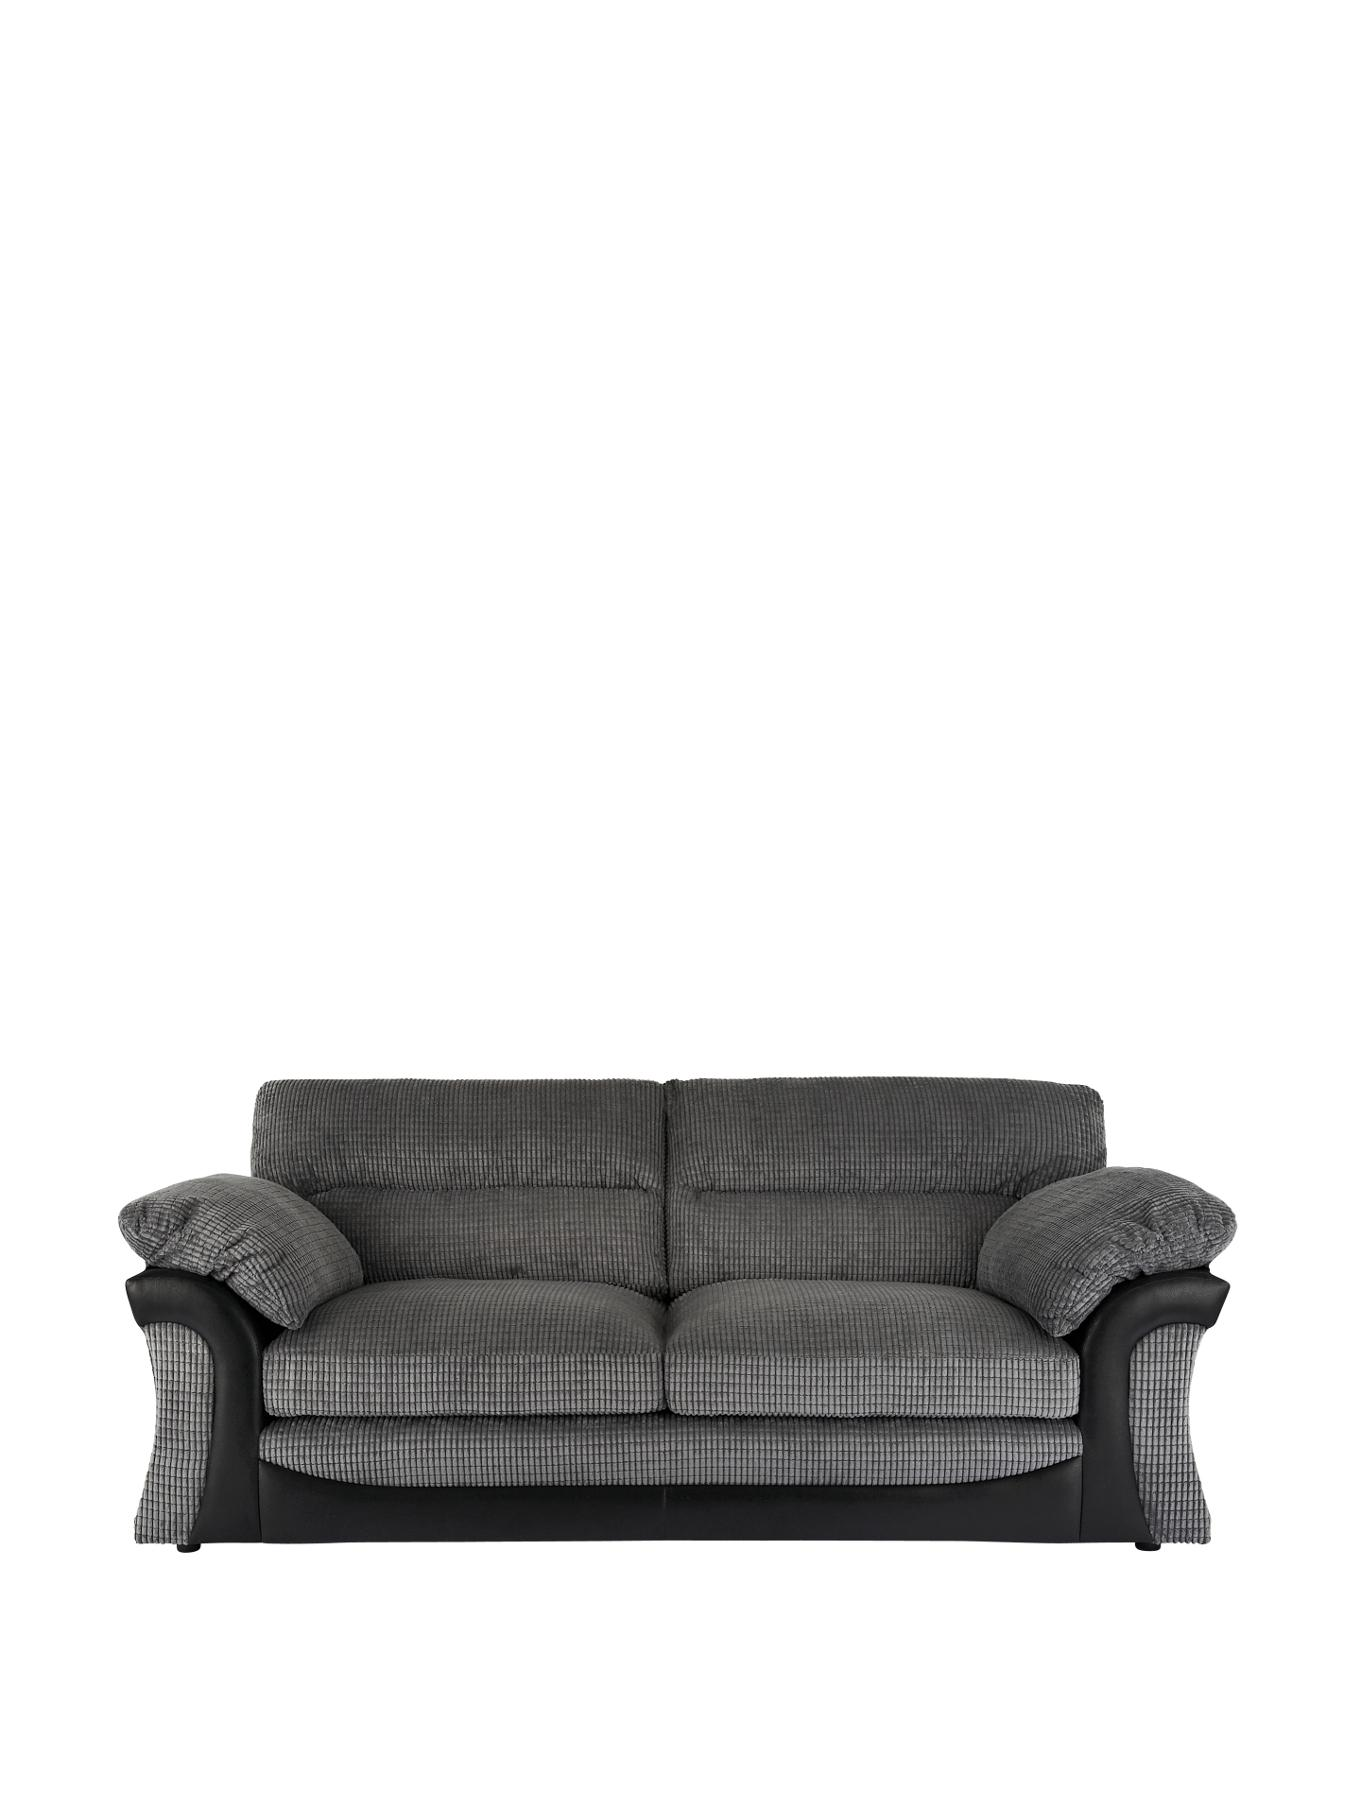 Rapide 3-Seater Sofa - Chocolate, Chocolate,Charcoal at Very, from Littlewoods